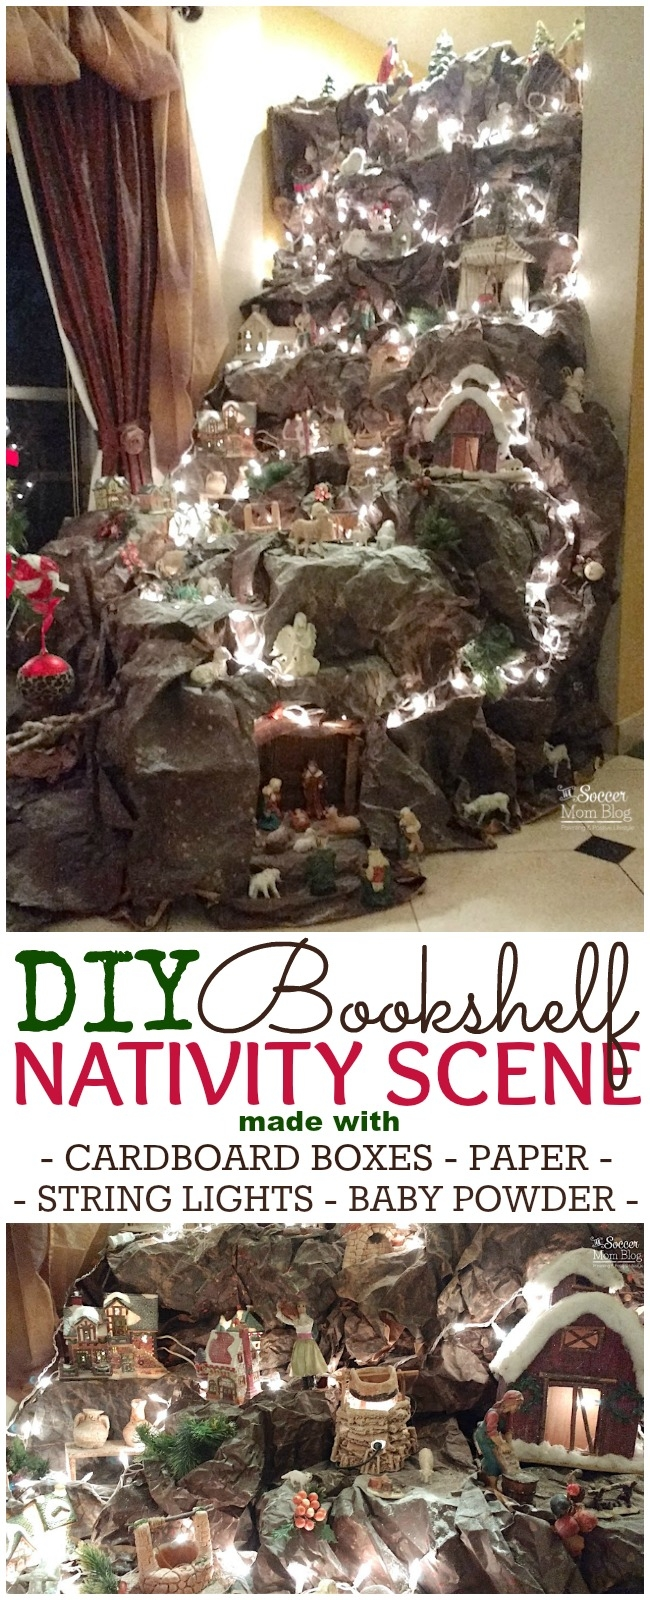 This DIY Nativity Scene is absolutely stunning - it will be the centerpiece of your Christmas decor! Made with simple household items and a bookshelf!